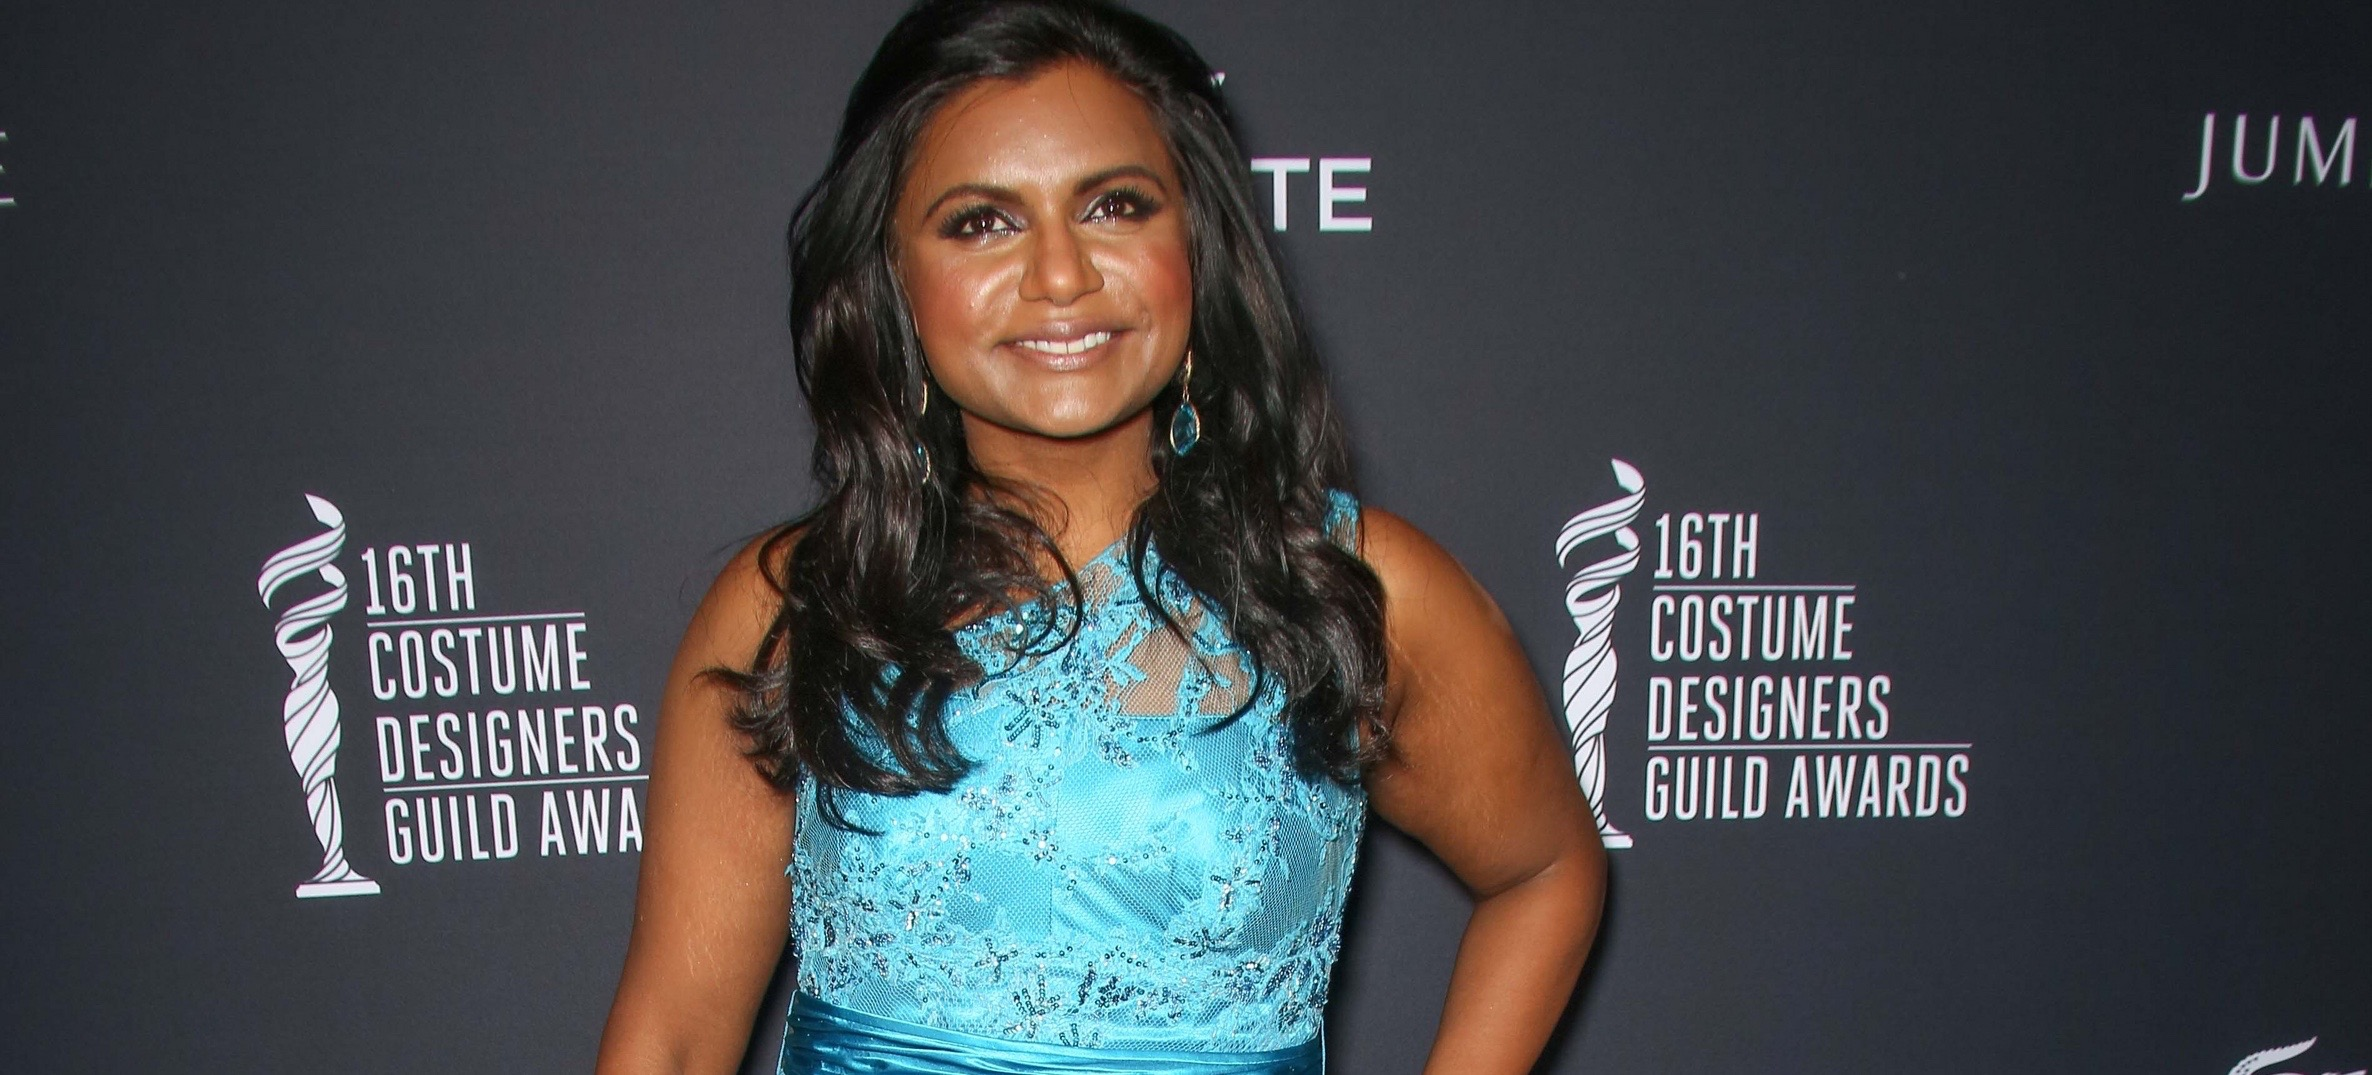 Mindy Kaling's Beauty Obsessions, Plus Her Hilarious Explanations